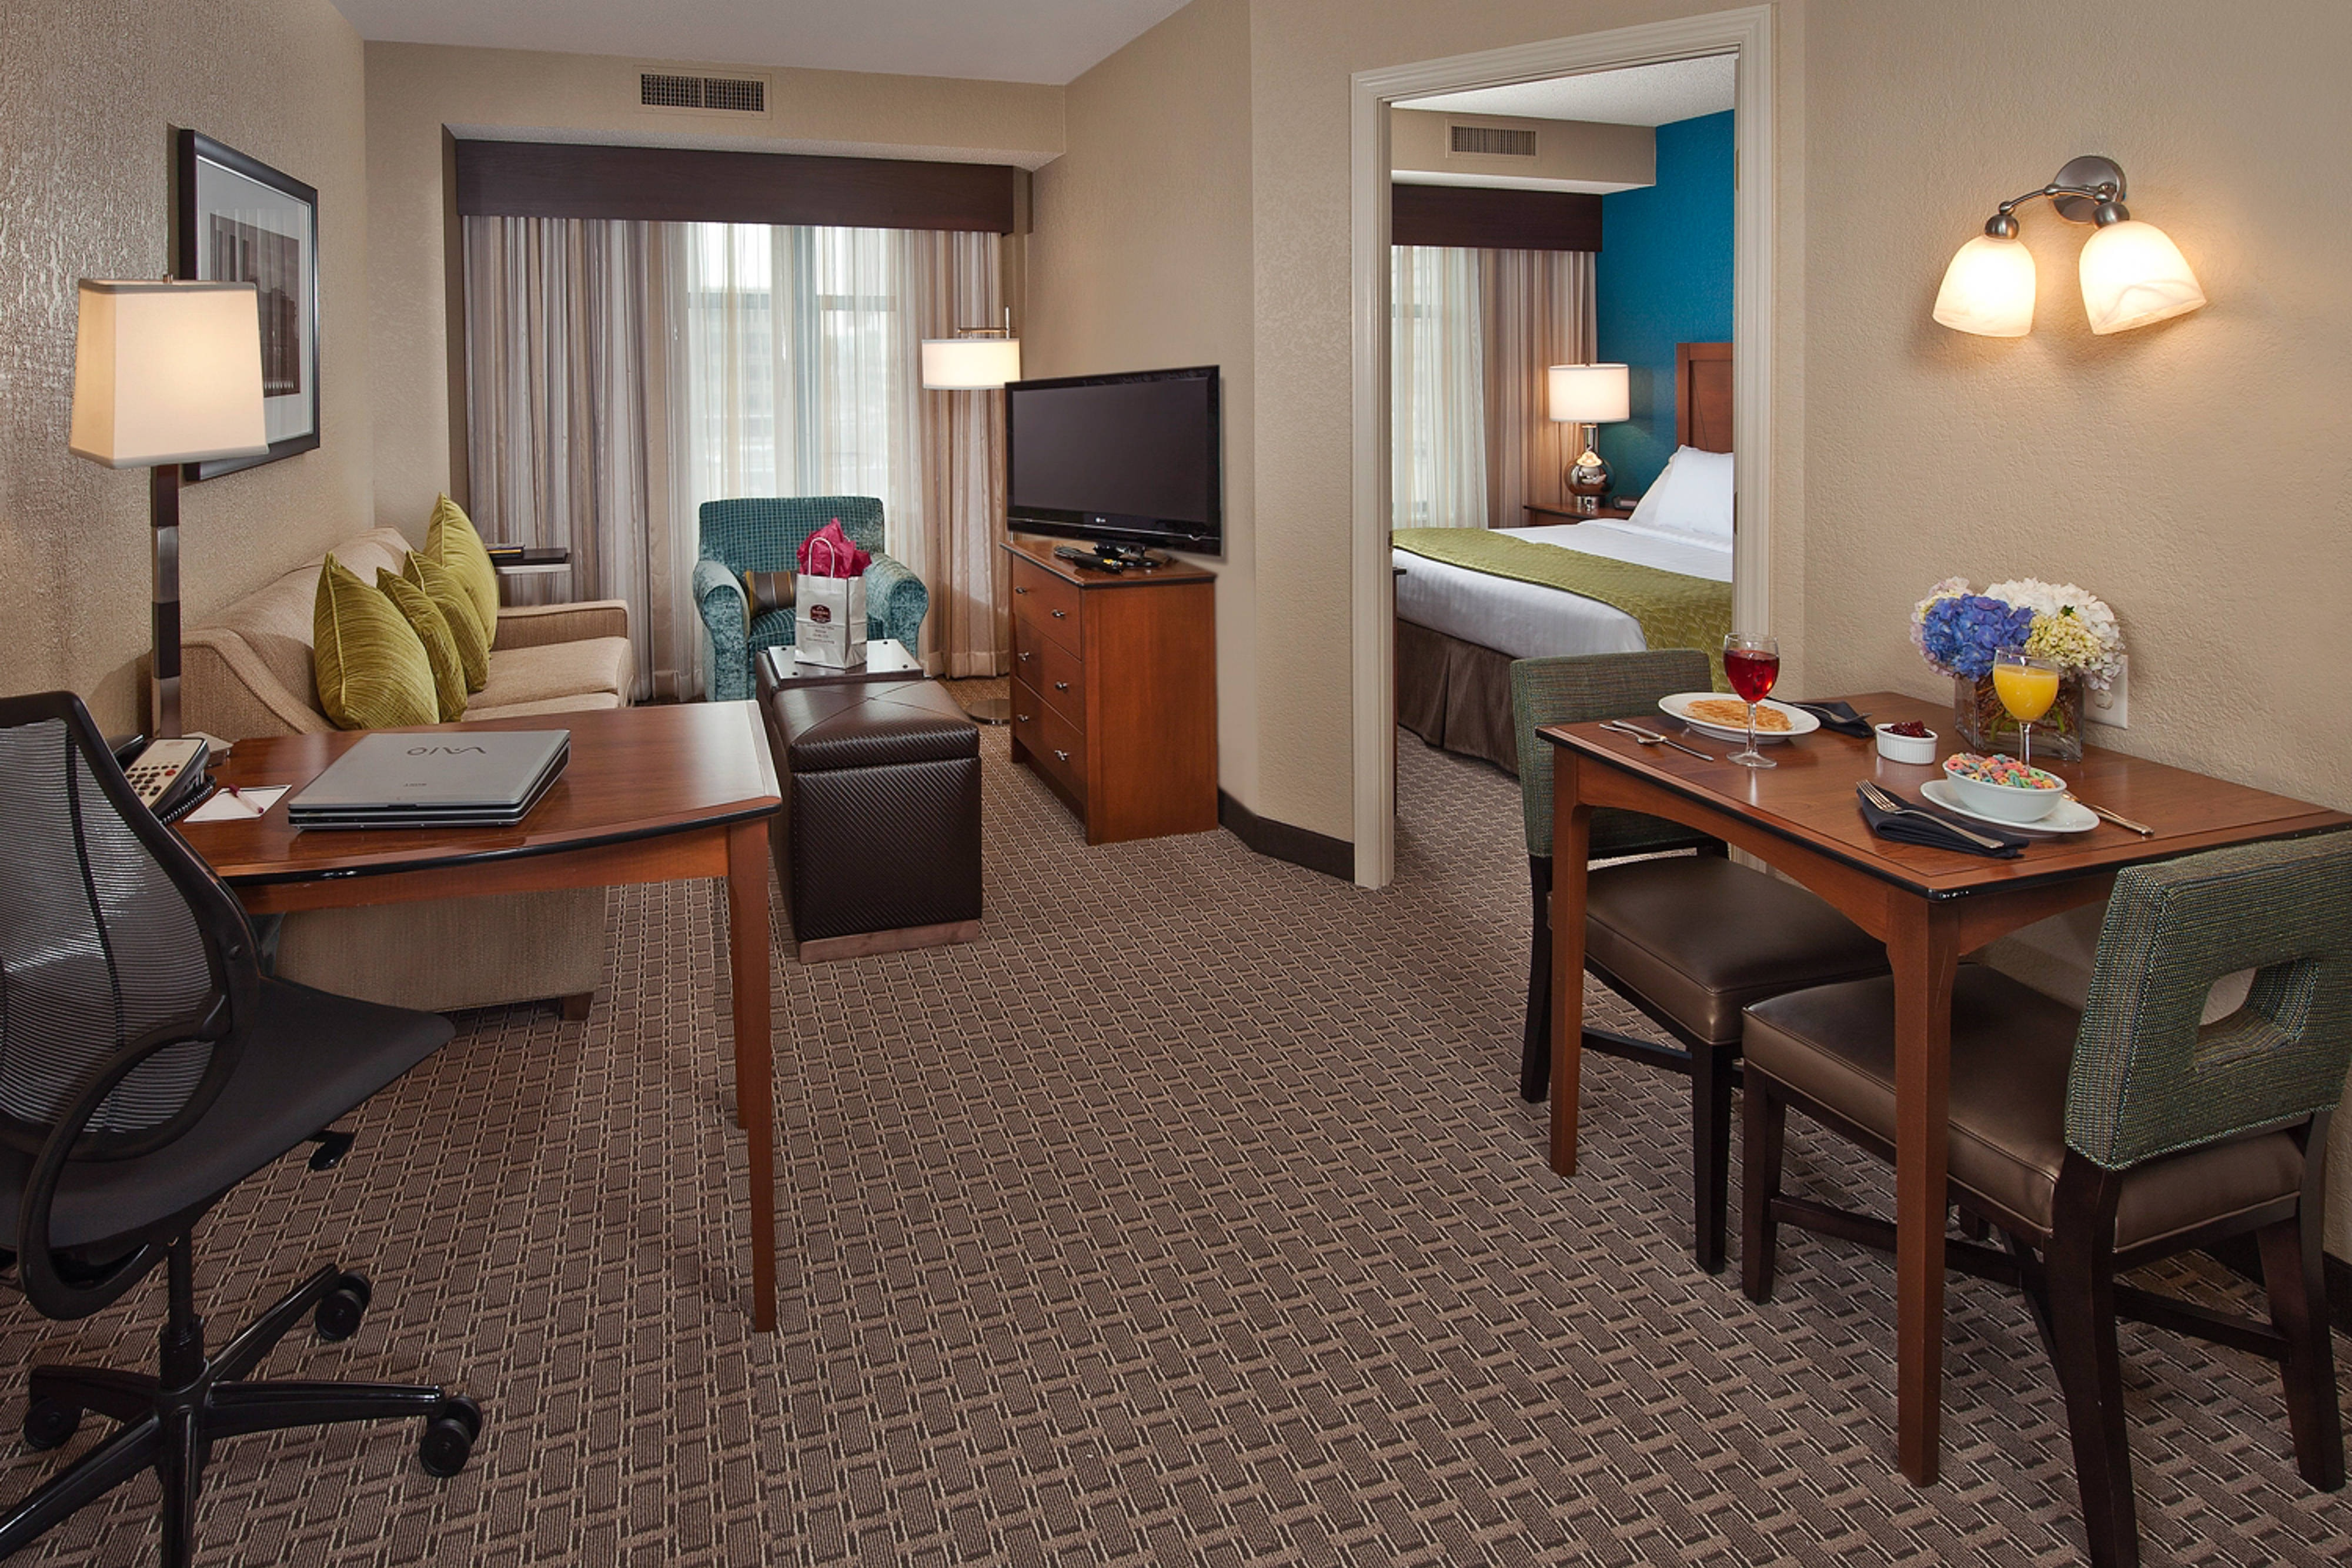 us holidayinnexpress inn ihg bedroom en hoteldetail new in downtown by orleans holiday suites express hotel hotels msyka